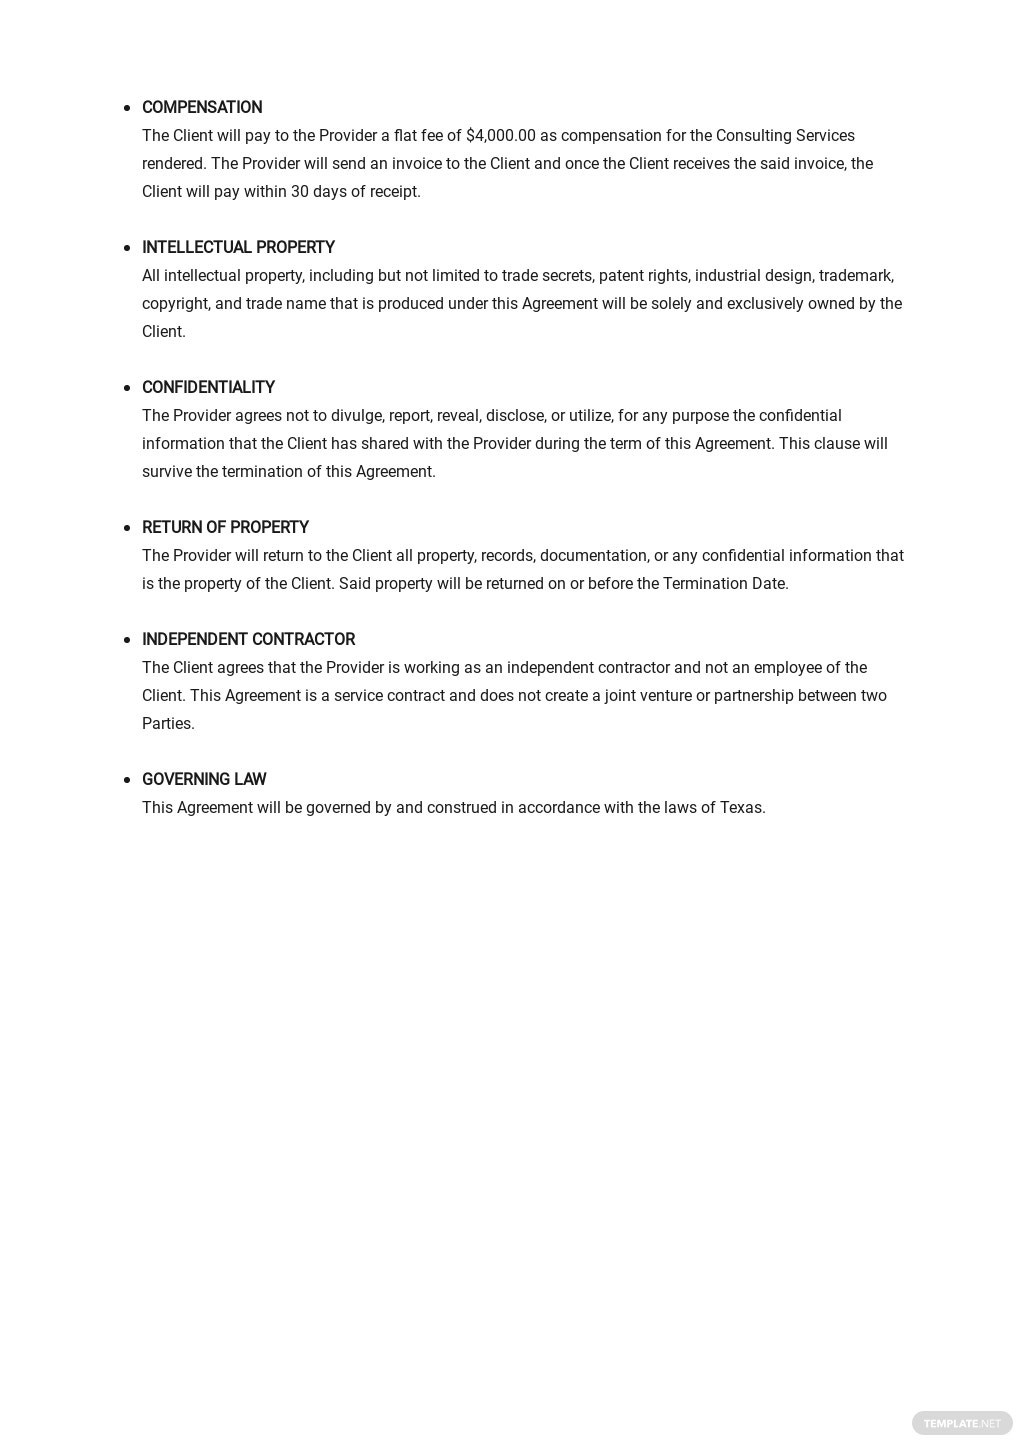 Consulting Agreement Template 2.jpe